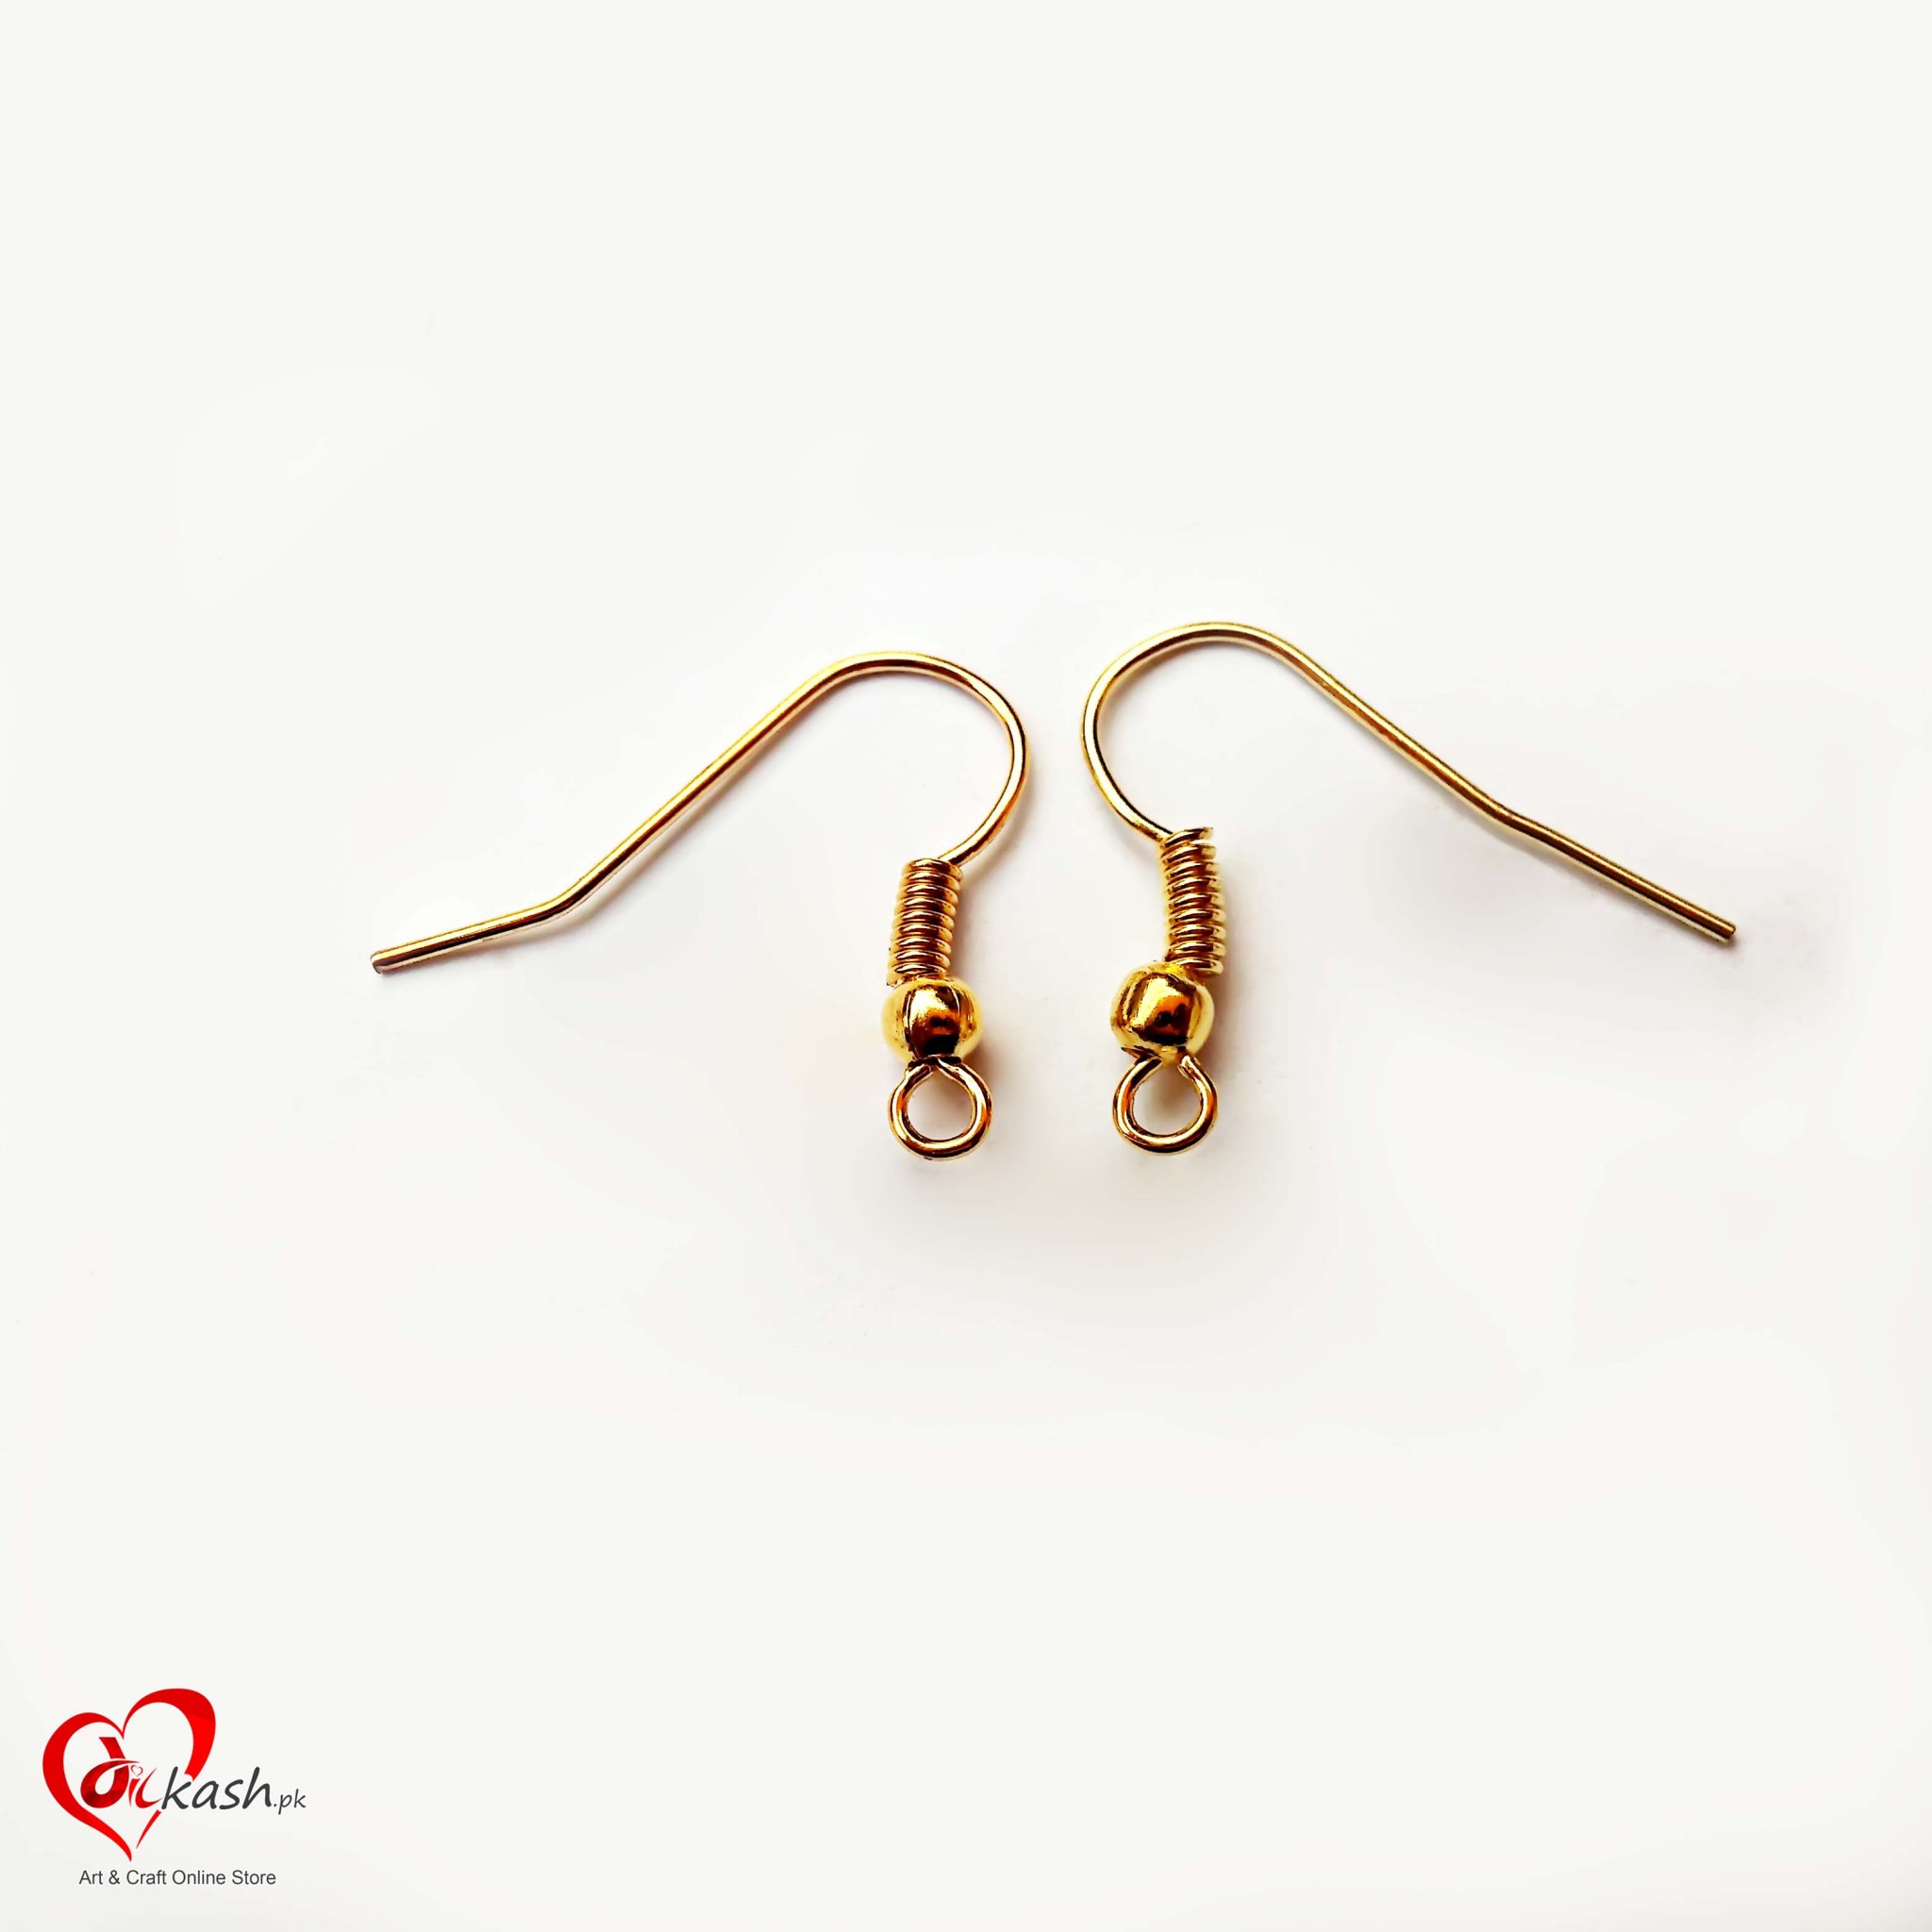 Earring Hooks for Jewellery Making